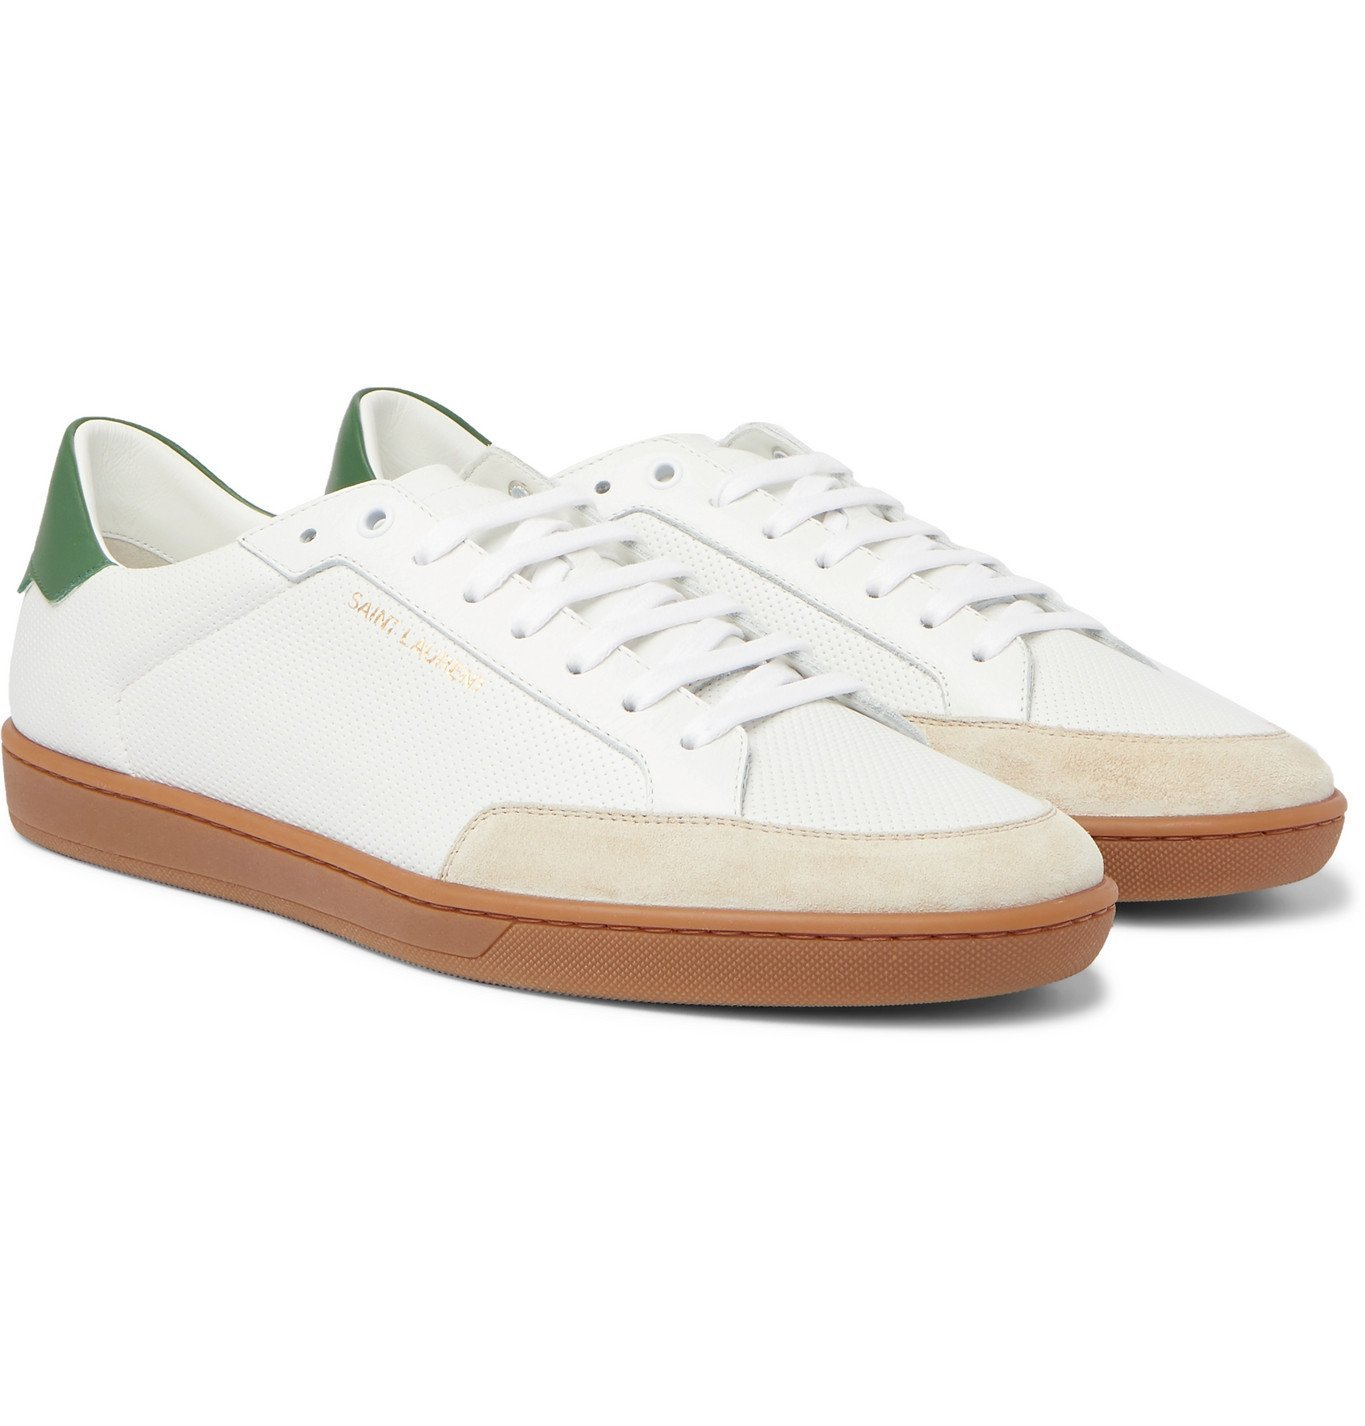 Photo: SAINT LAURENT - SL/10 Suede-Trimmed Perforated Leather Sneakers - White